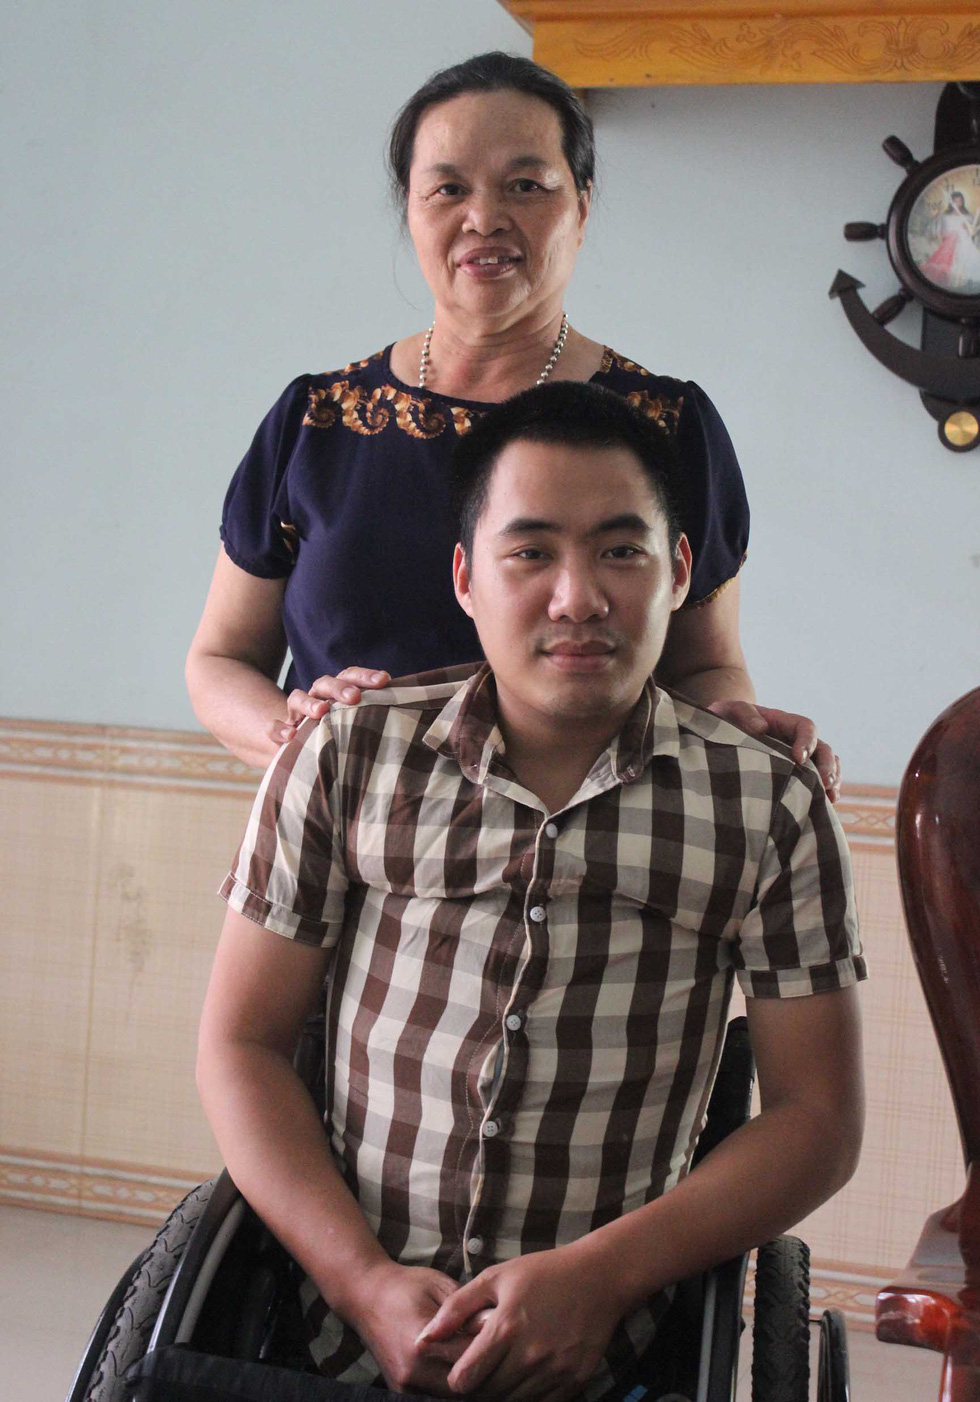 Dinh Thi Thuong (standing) and her foster son, Dinh Van Hao, are seen at their home in Thai Nguyen Province, northern Vietnam. Photo: Tuoi Tre